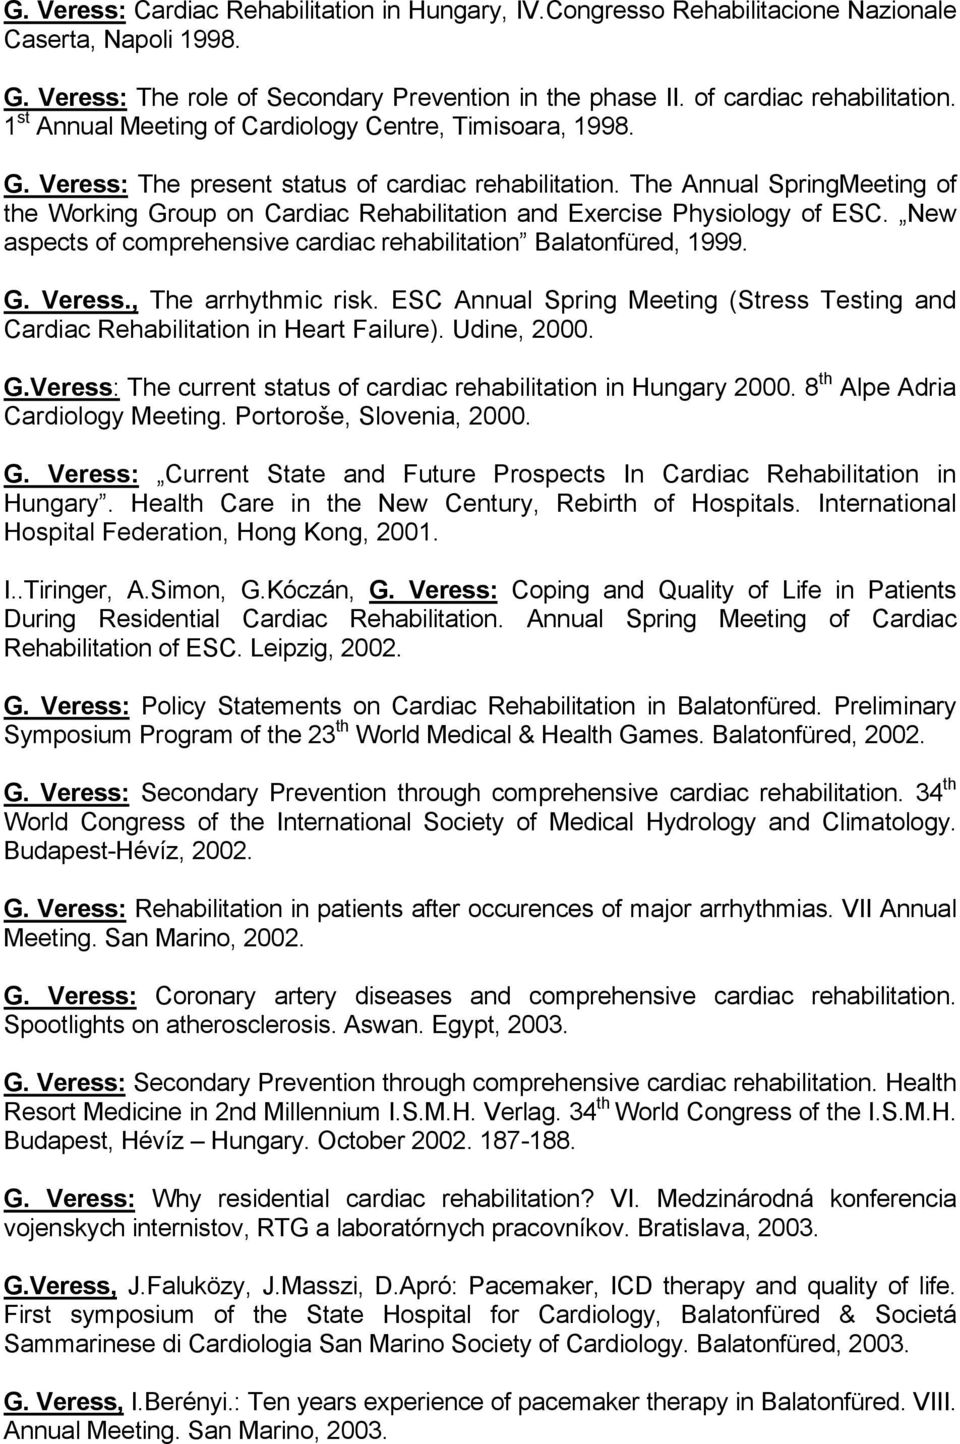 The Annual SpringMeeting of the Working Group on Cardiac Rehabilitation and Exercise Physiology of ESC. New aspects of comprehensive cardiac rehabilitation Balatonfüred, 1999. G. Veress.